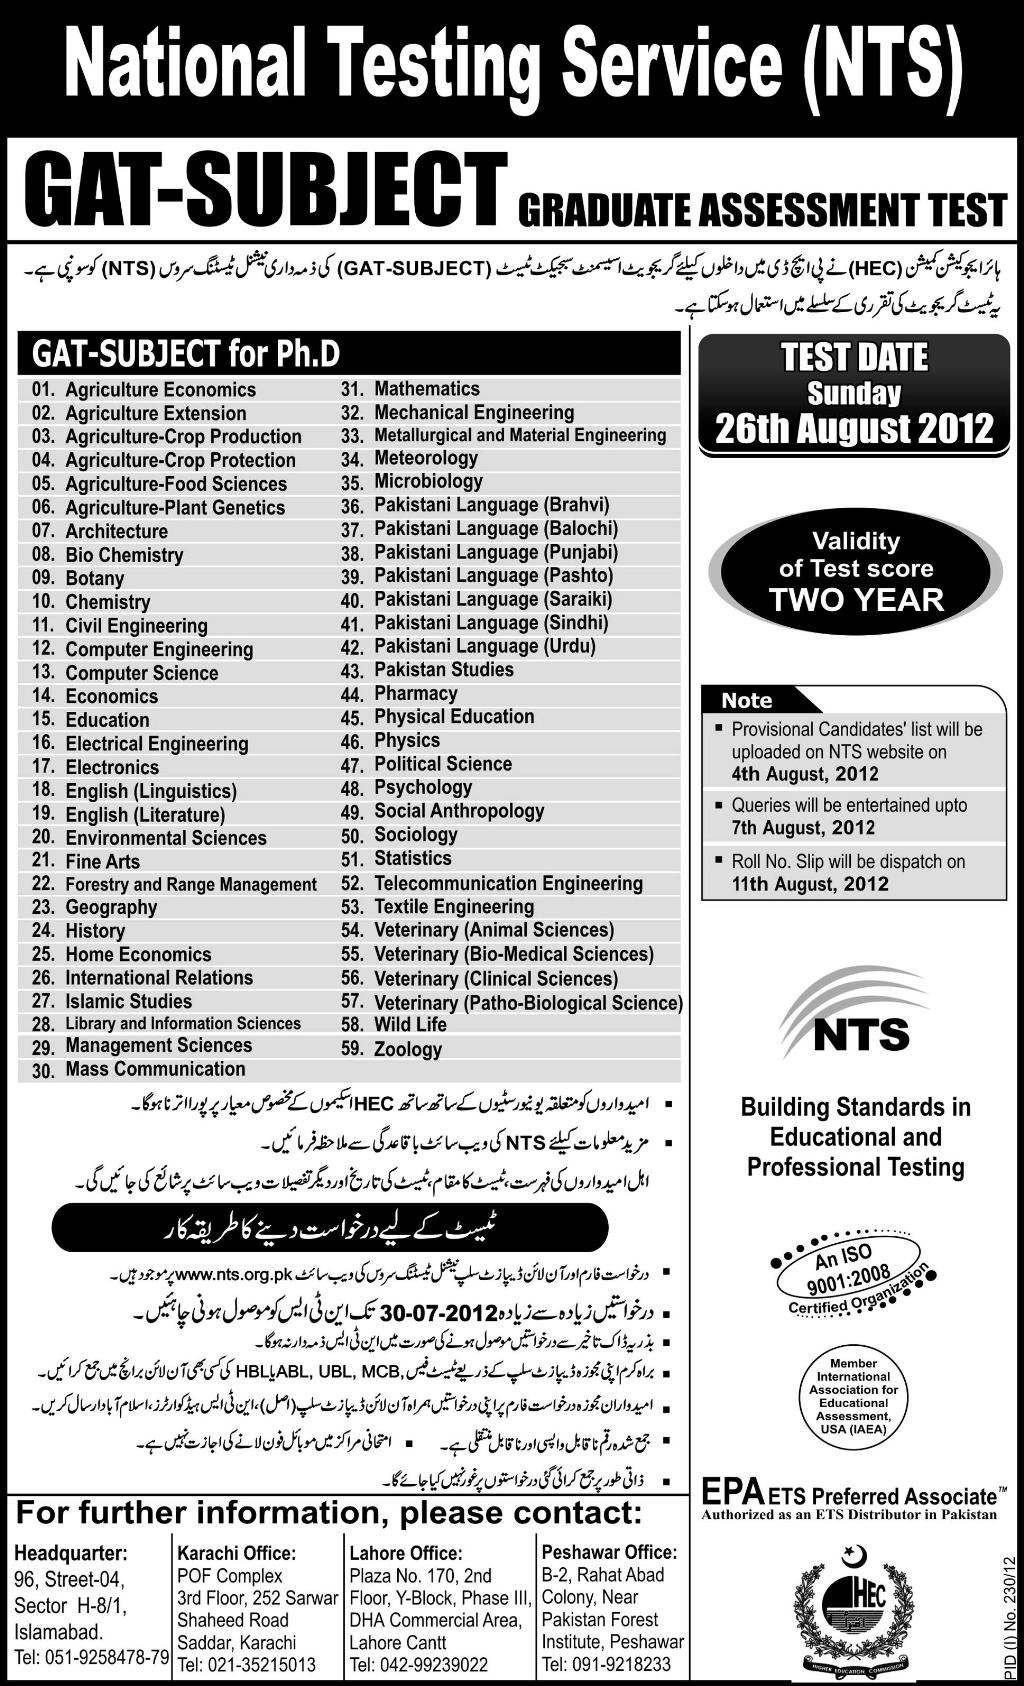 national testing service NTS Graduate Assessment Test 2012: GAT Subject for PhD